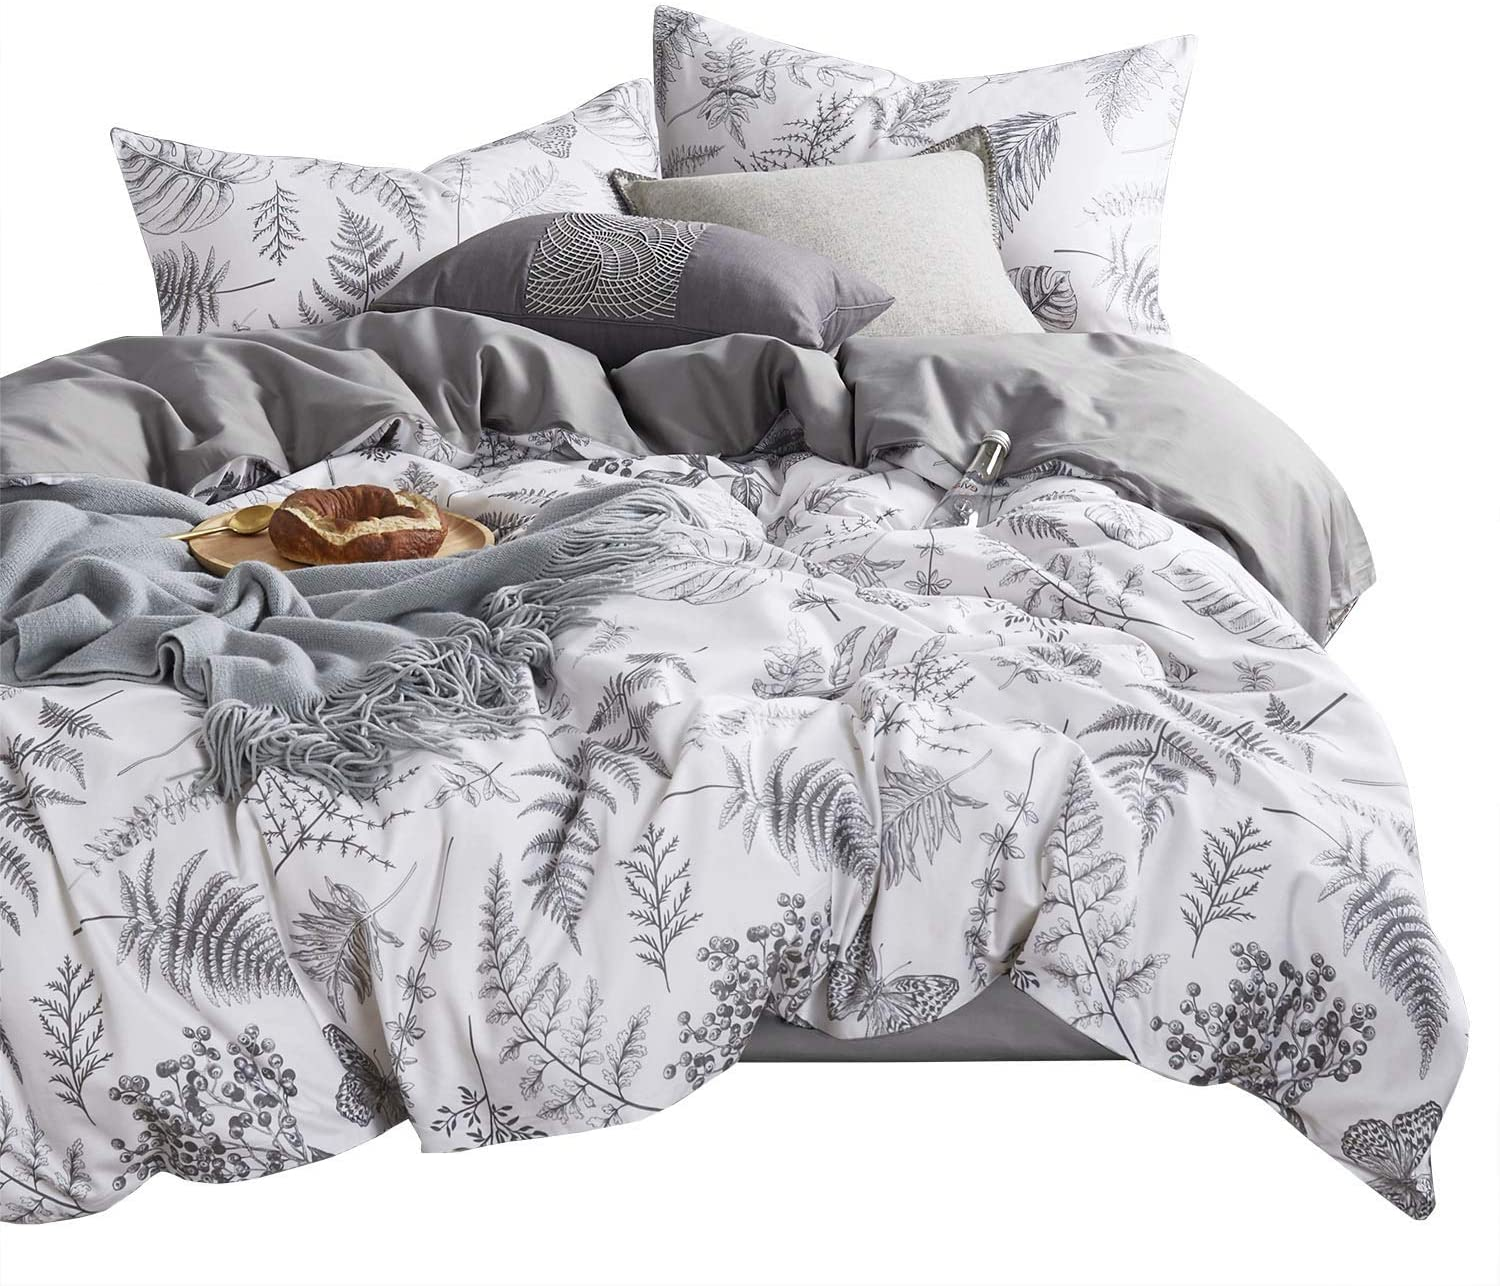 Wake In Cloud - Botanical Duvet Cover Set, Plant Tree Leaves and Butterfly Pattern Printed in Black White Gray Grey, Soft Microfiber Bedding with Zipper Closure (3pcs, Queen Size)